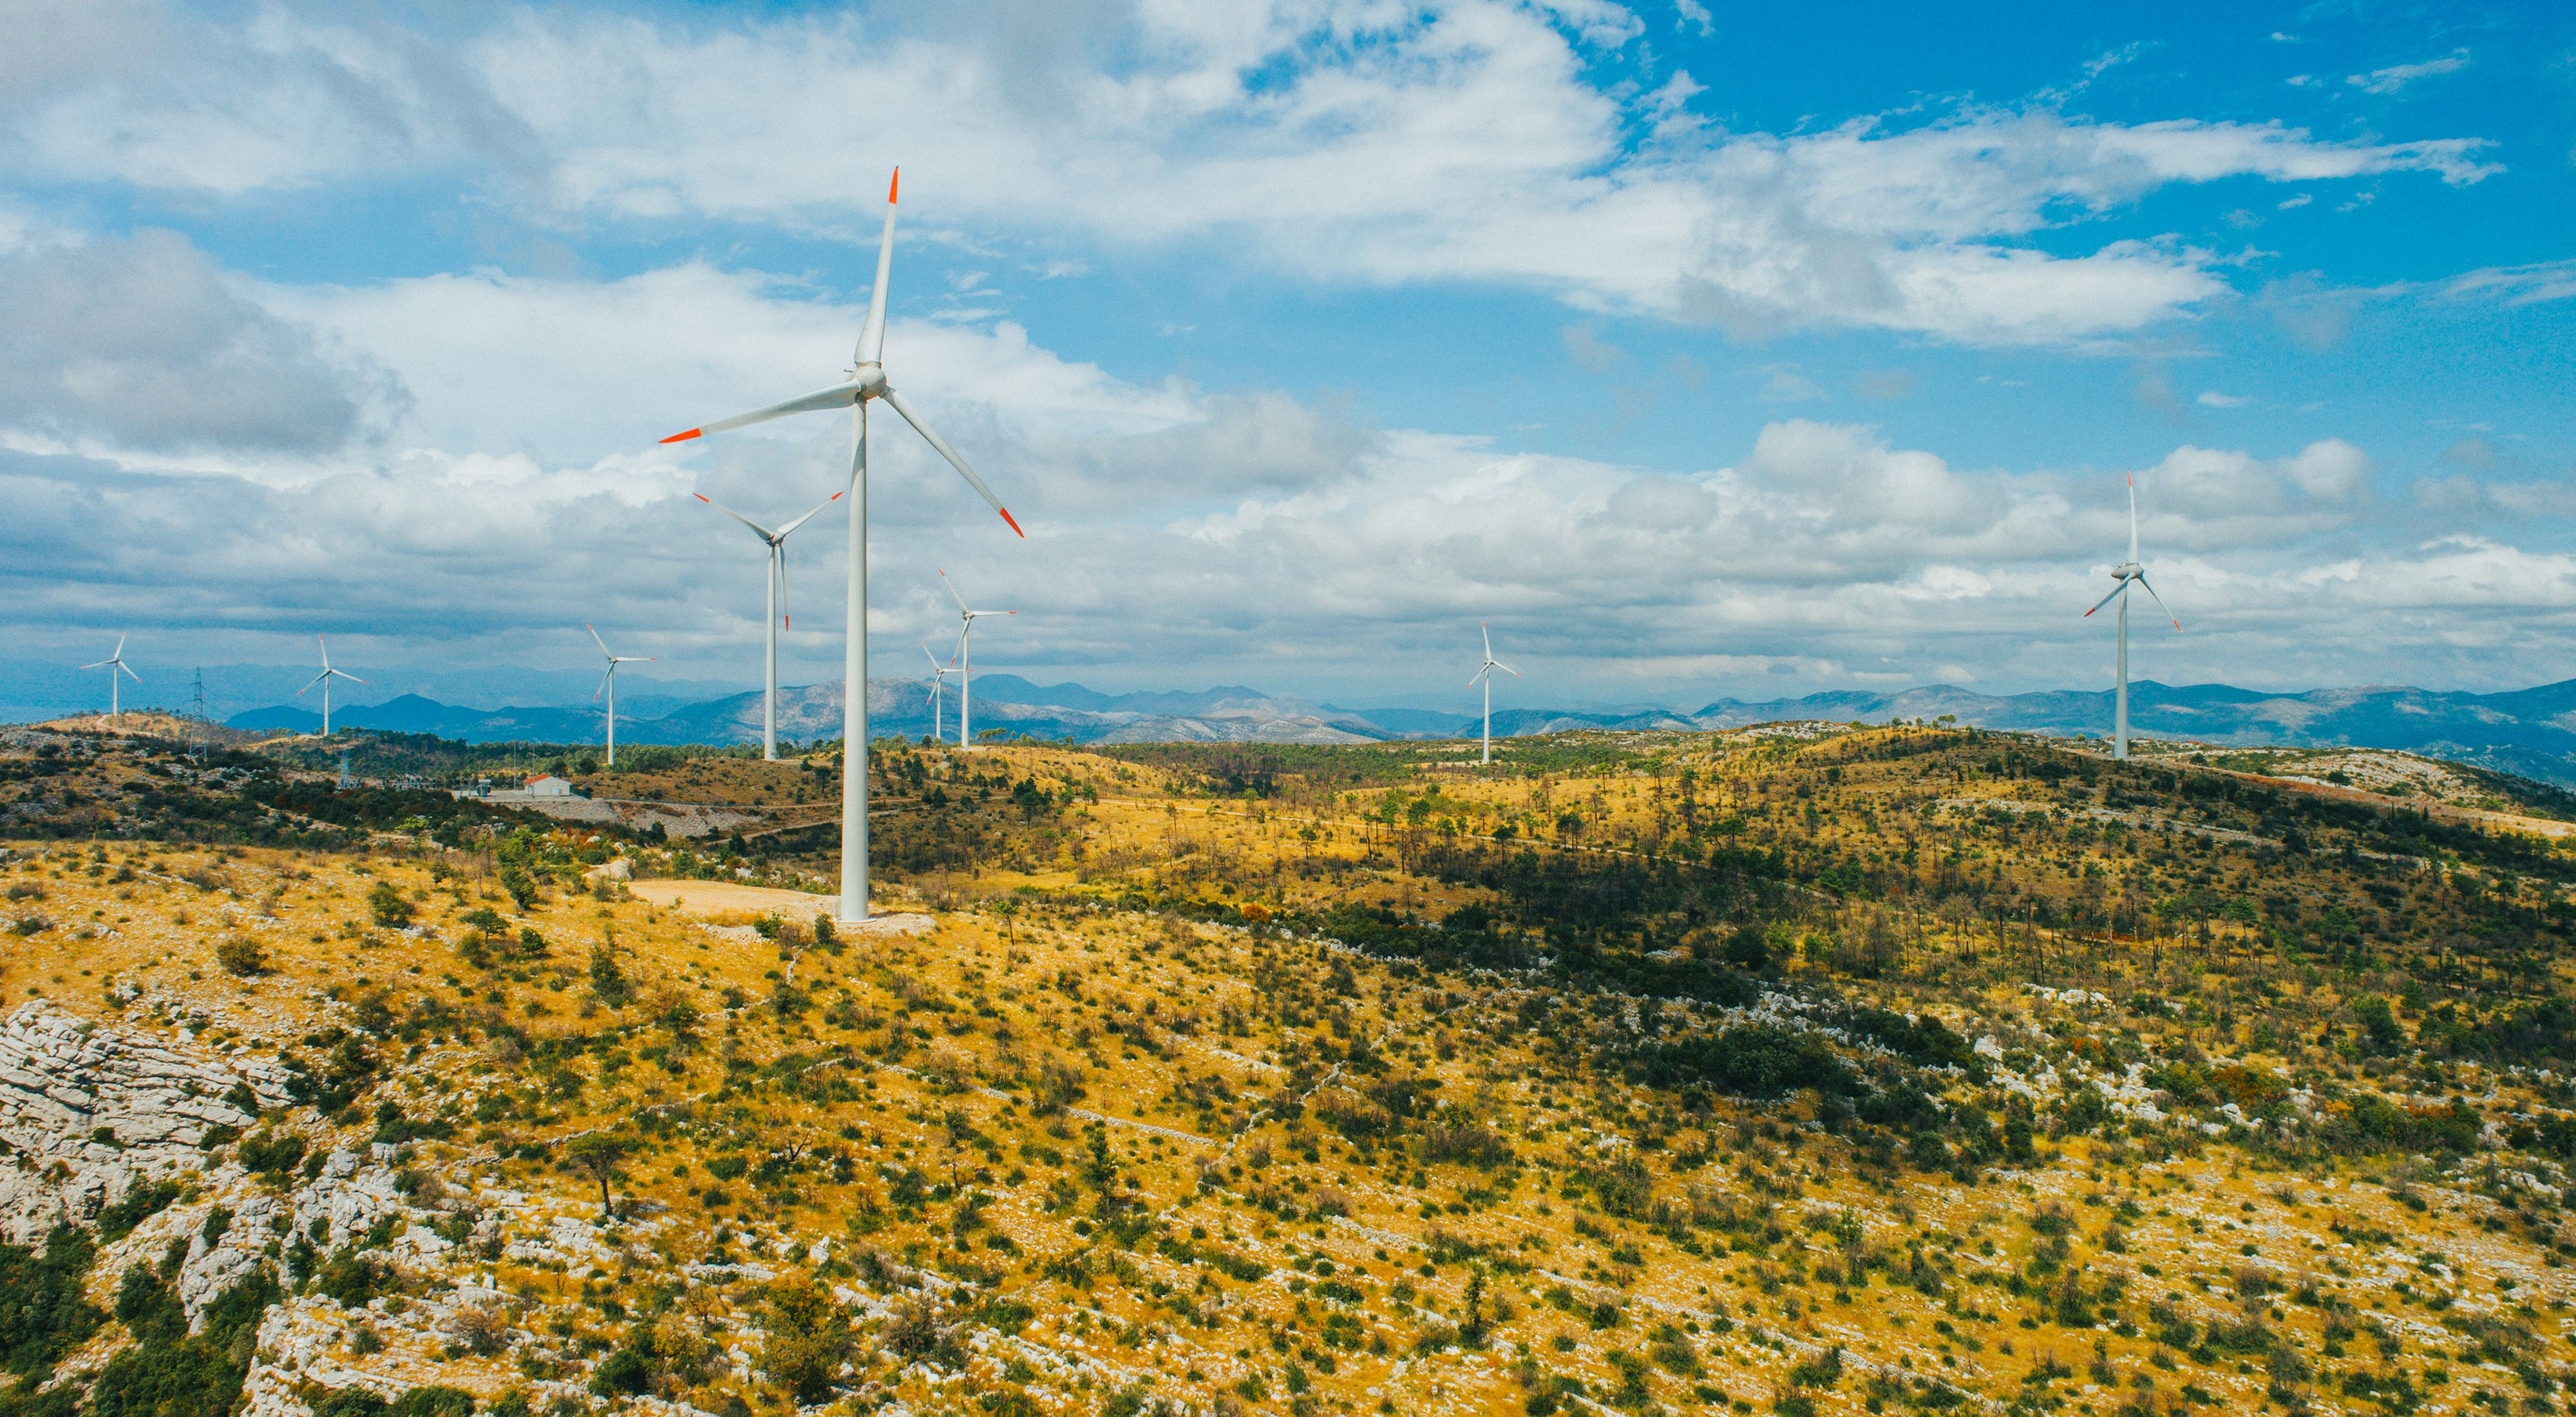 Scenic mountainous landscape with wind turbines against cloudy sky.